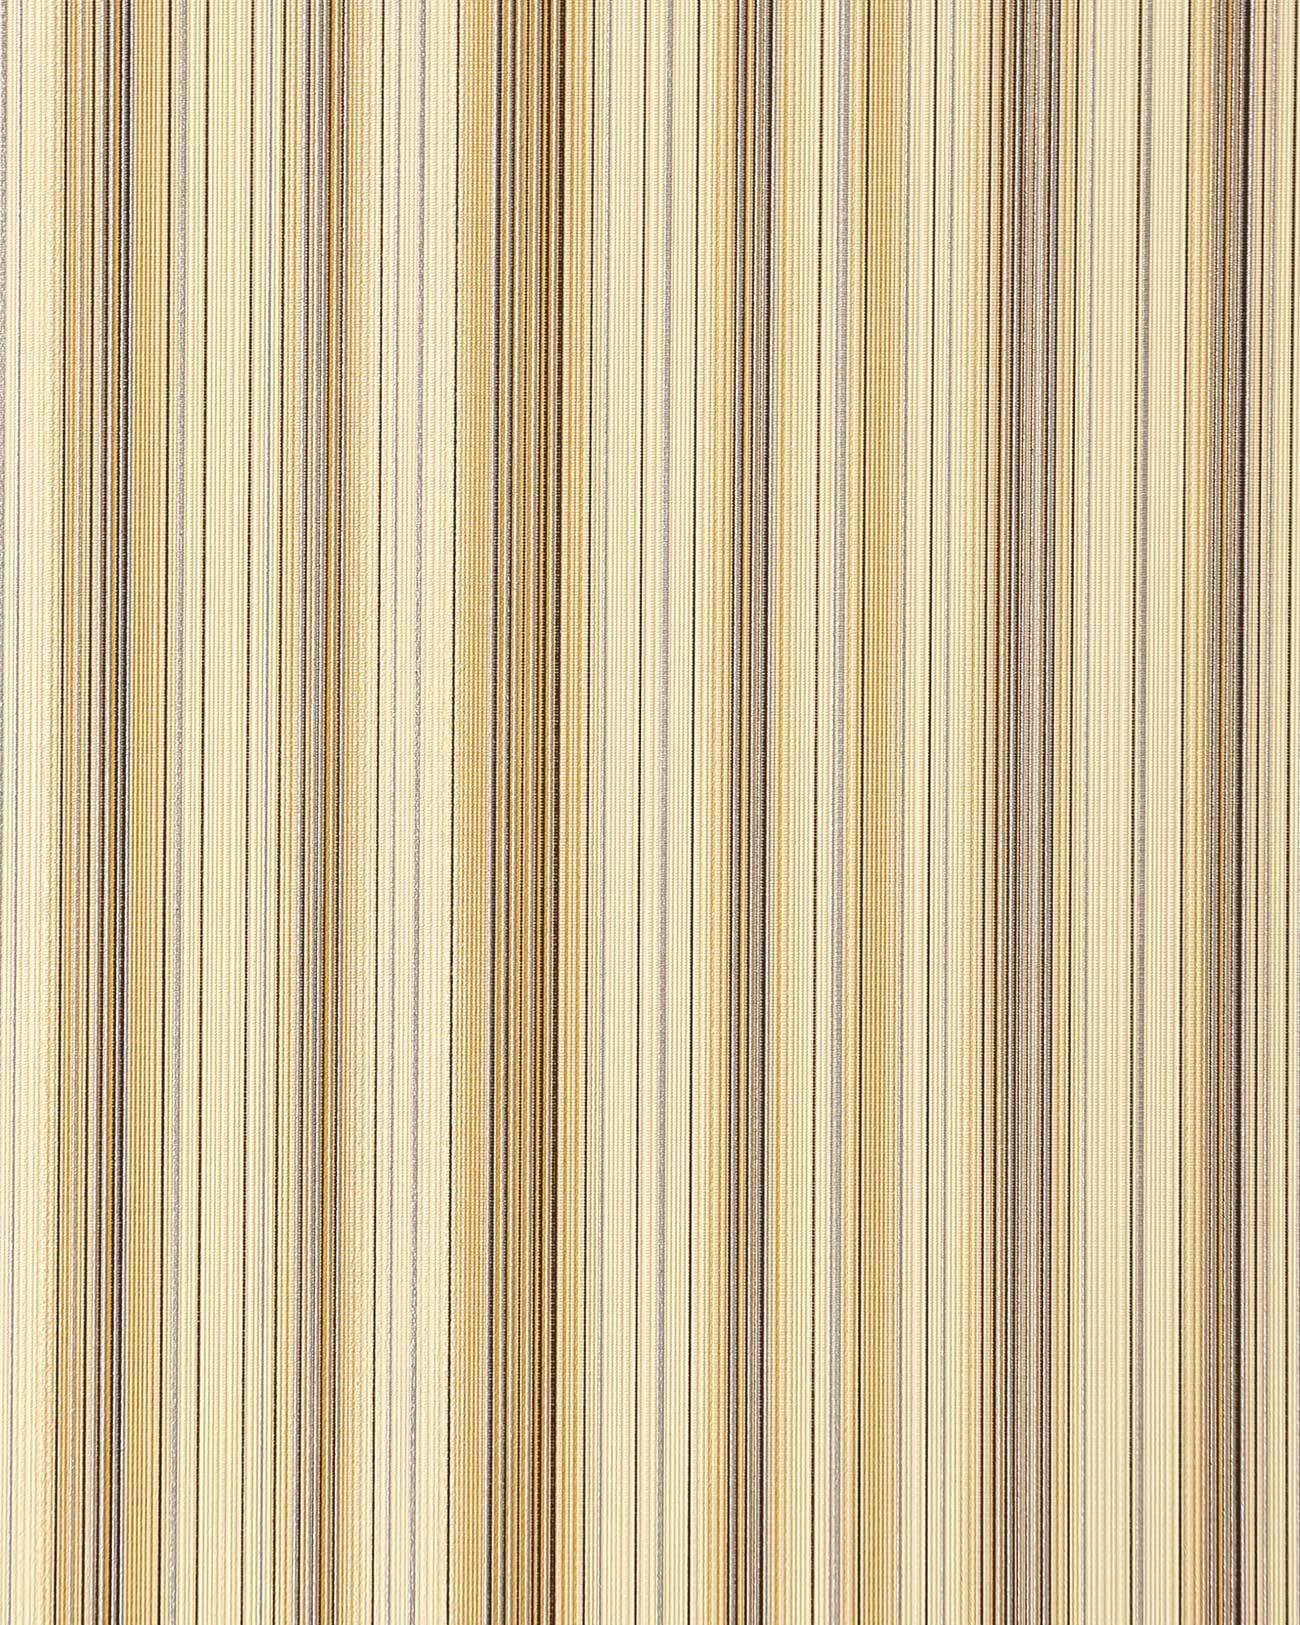 Wallcovering Vinyl Stripes Wallpaper Wall EDEM 097 21 Sumptuous Modern And Noble Brown Beige Old Rose Silver